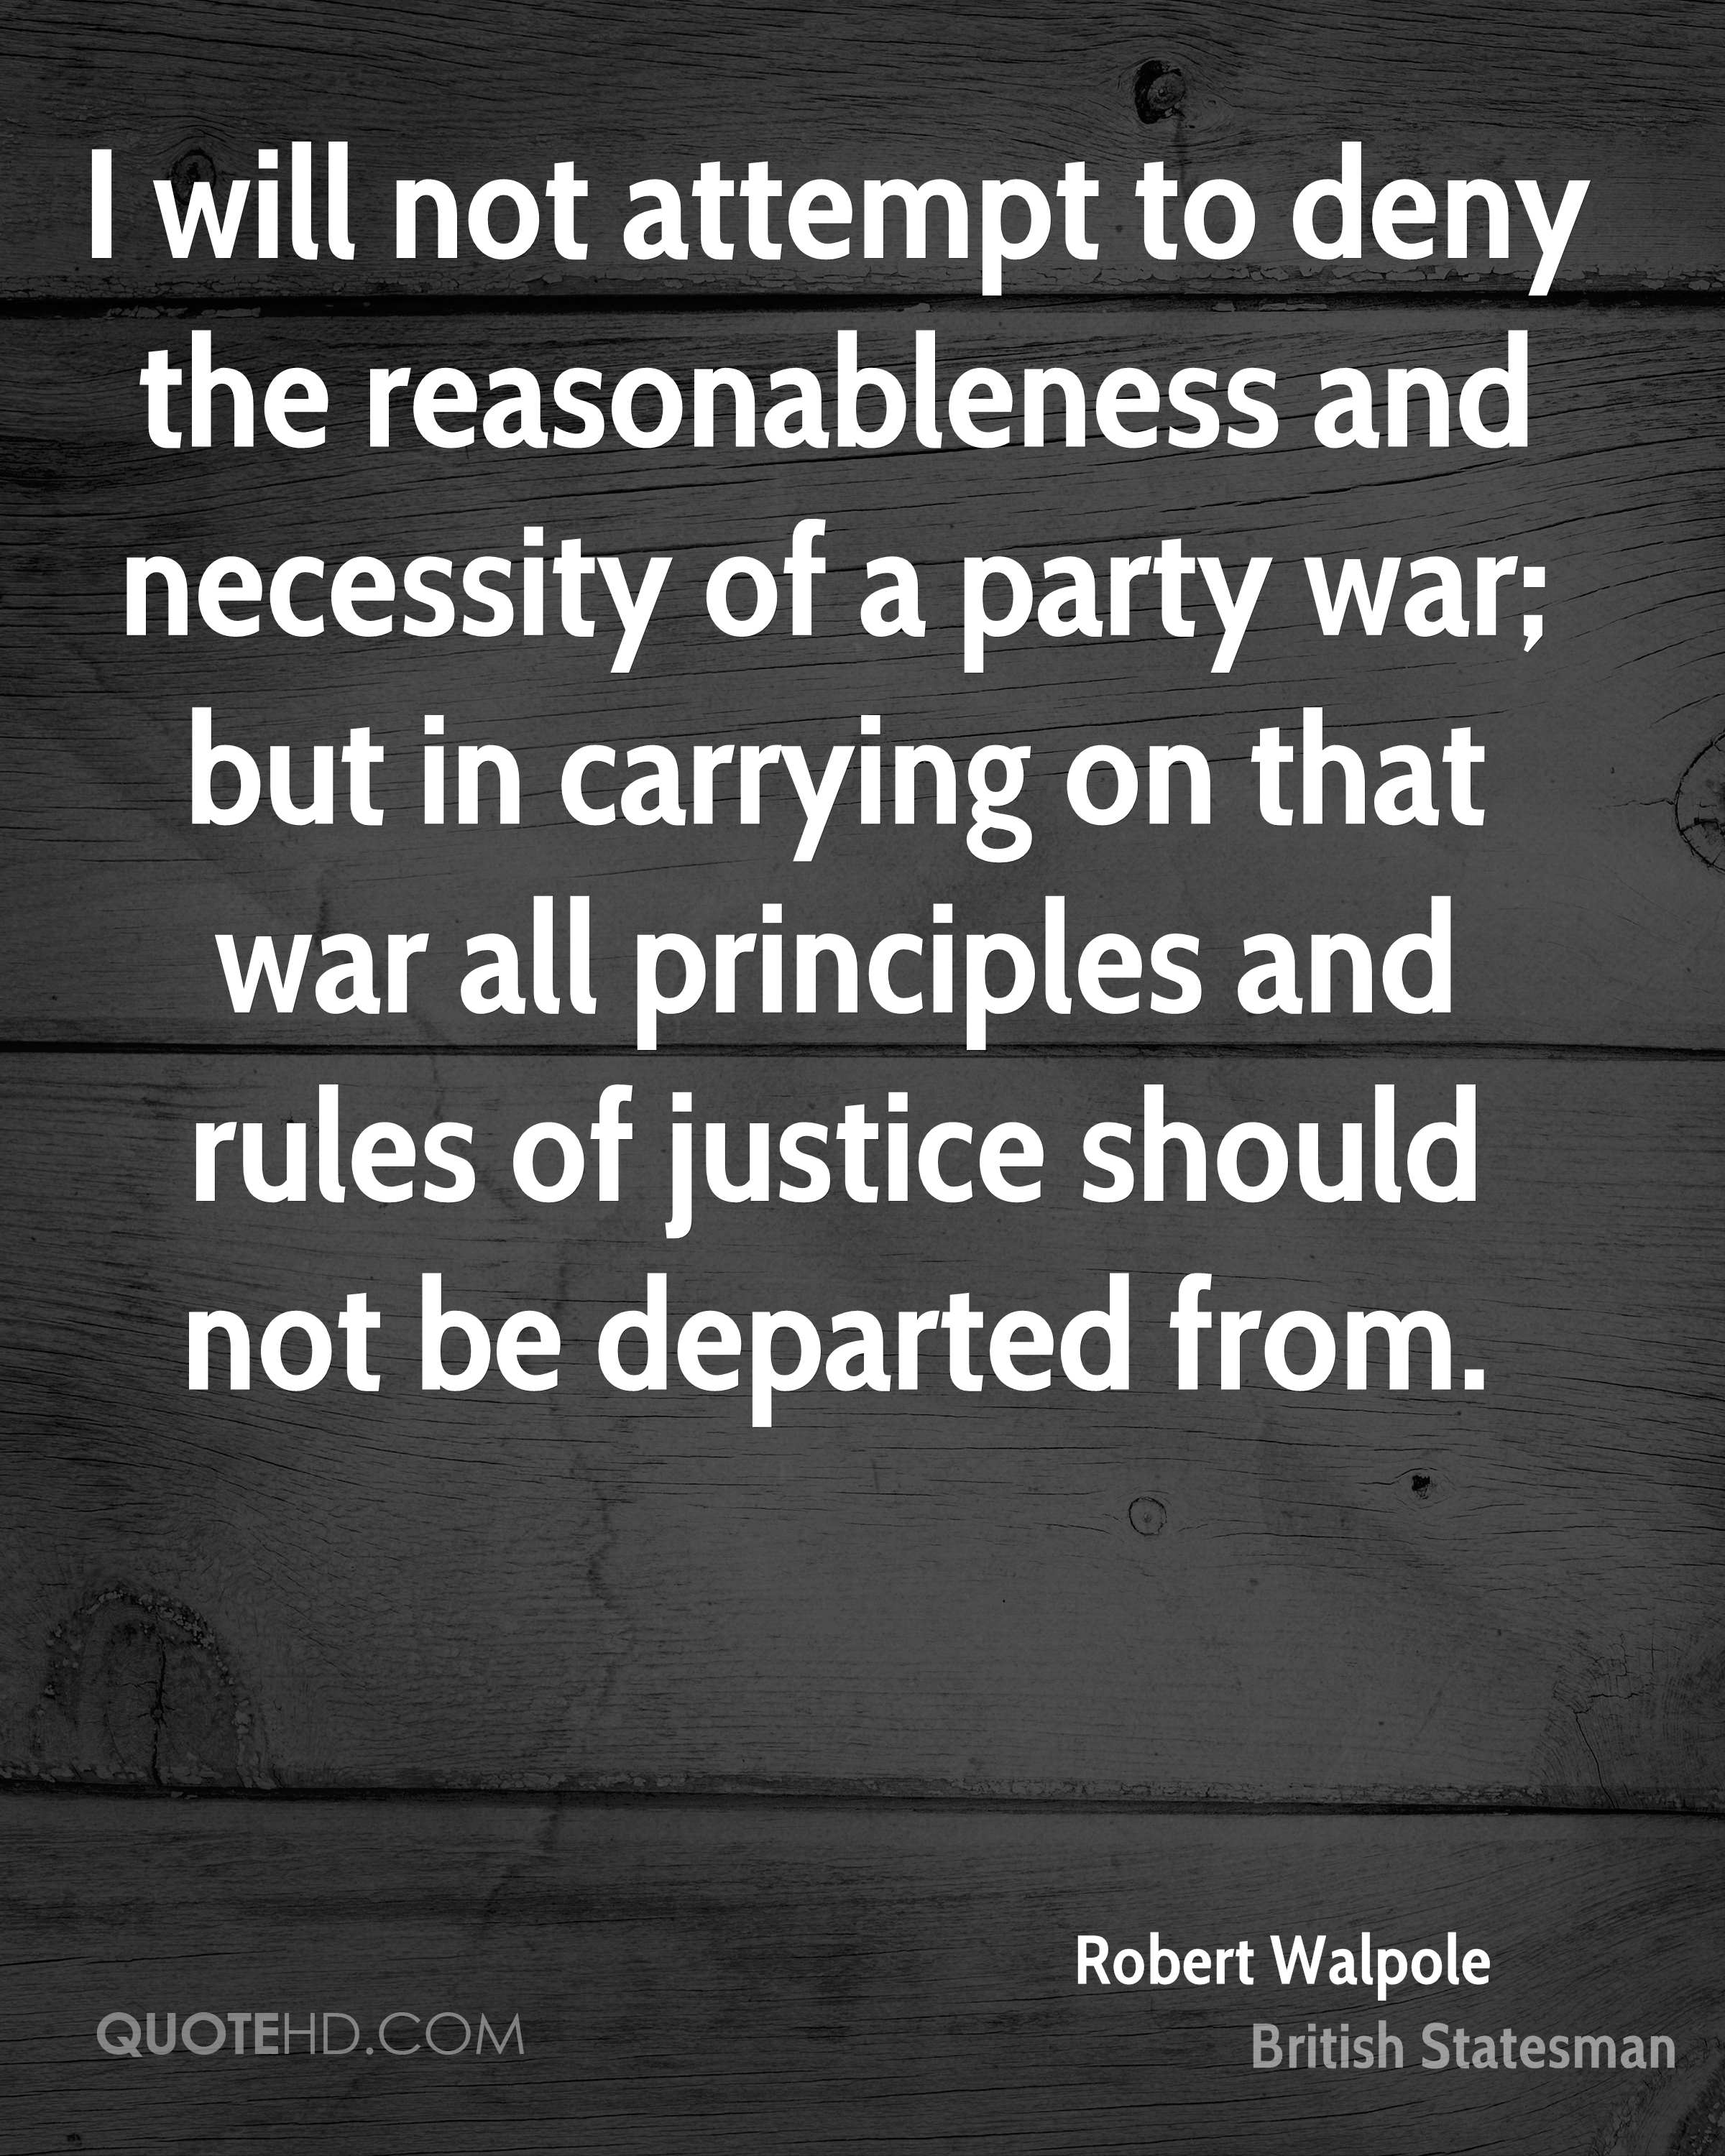 I will not attempt to deny the reasonableness and necessity of a party war; but in carrying on that war all principles and rules of justice should not be departed from.